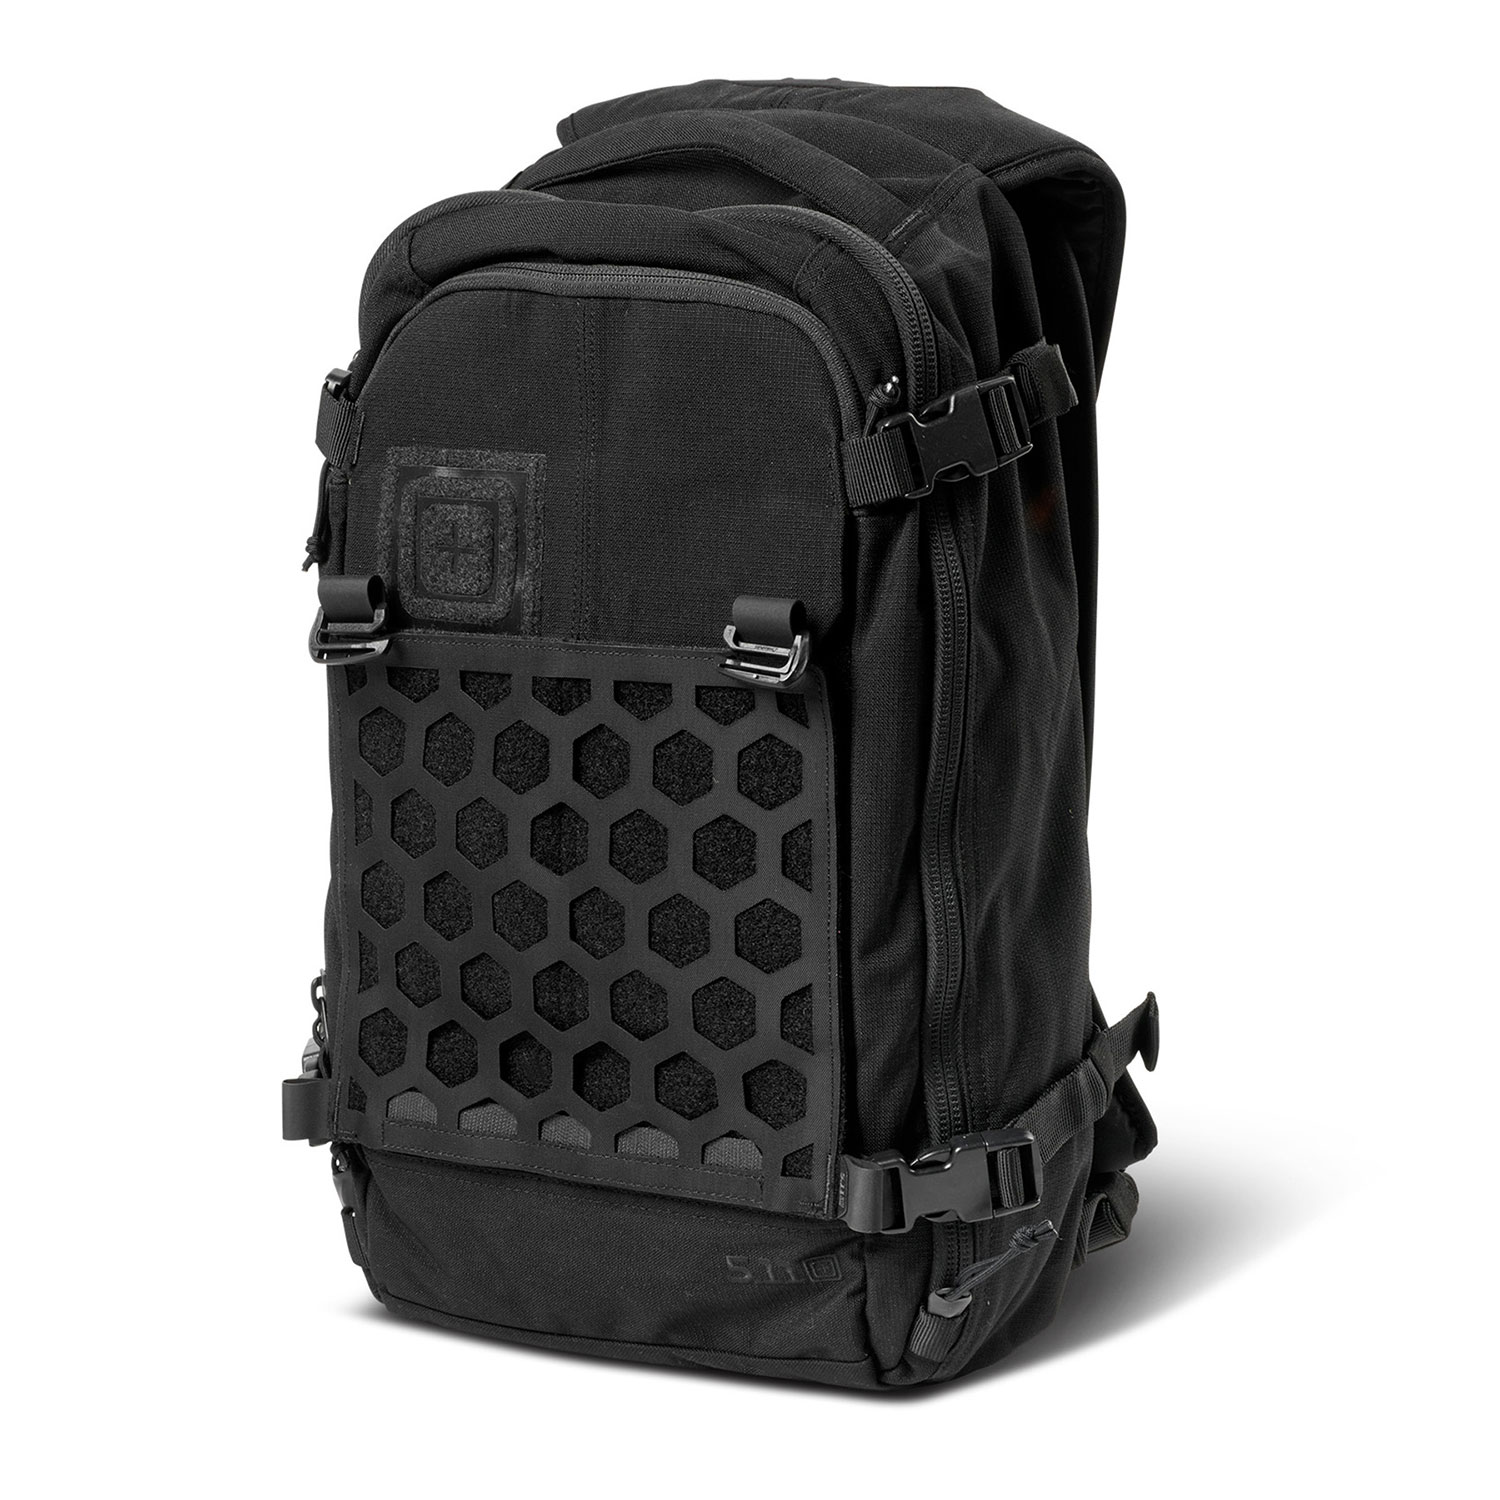 5.11 AMP12 Backpack 25L